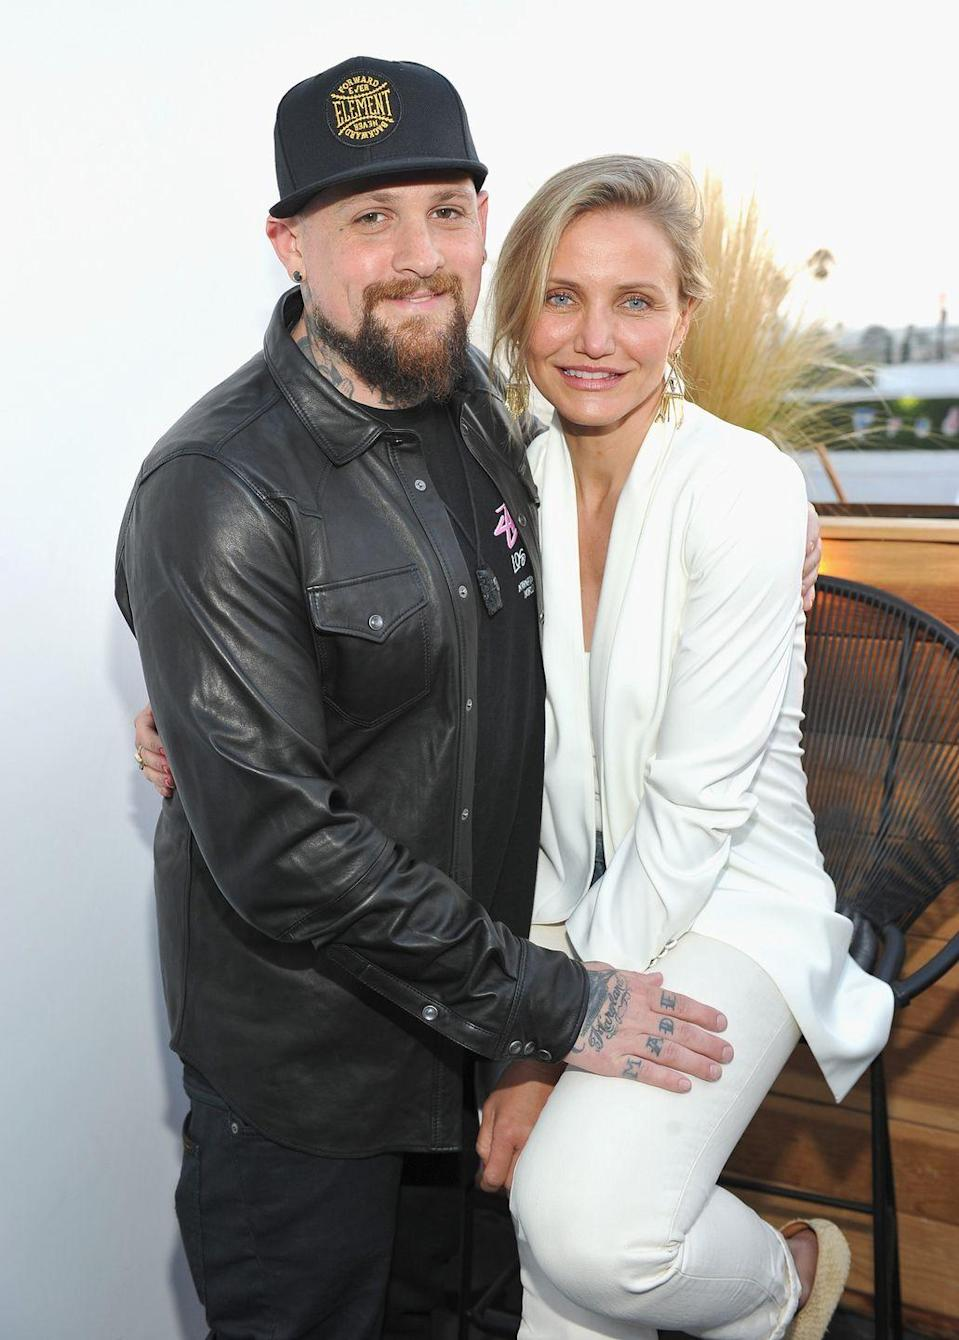 """<p>Nicole Richie is behind this pairing. The reality star, who is married to Madden's brother, Joel, took credit for the couple during an appearance on <a href=""""https://www.usmagazine.com/celebrity-news/news/nicole-richie-talks-cameron-diaz-and-benji-madden-is-happy-for-them-201497/"""" rel=""""nofollow noopener"""" target=""""_blank"""" data-ylk=""""slk:Watch What Happens Live"""" class=""""link rapid-noclick-resp""""><em>Watch What Happens Live</em></a>.</p><p>""""I approve of anything that's going to make Benji happy,"""" she said. """"I'm going to take responsibility for everything!"""" </p>"""